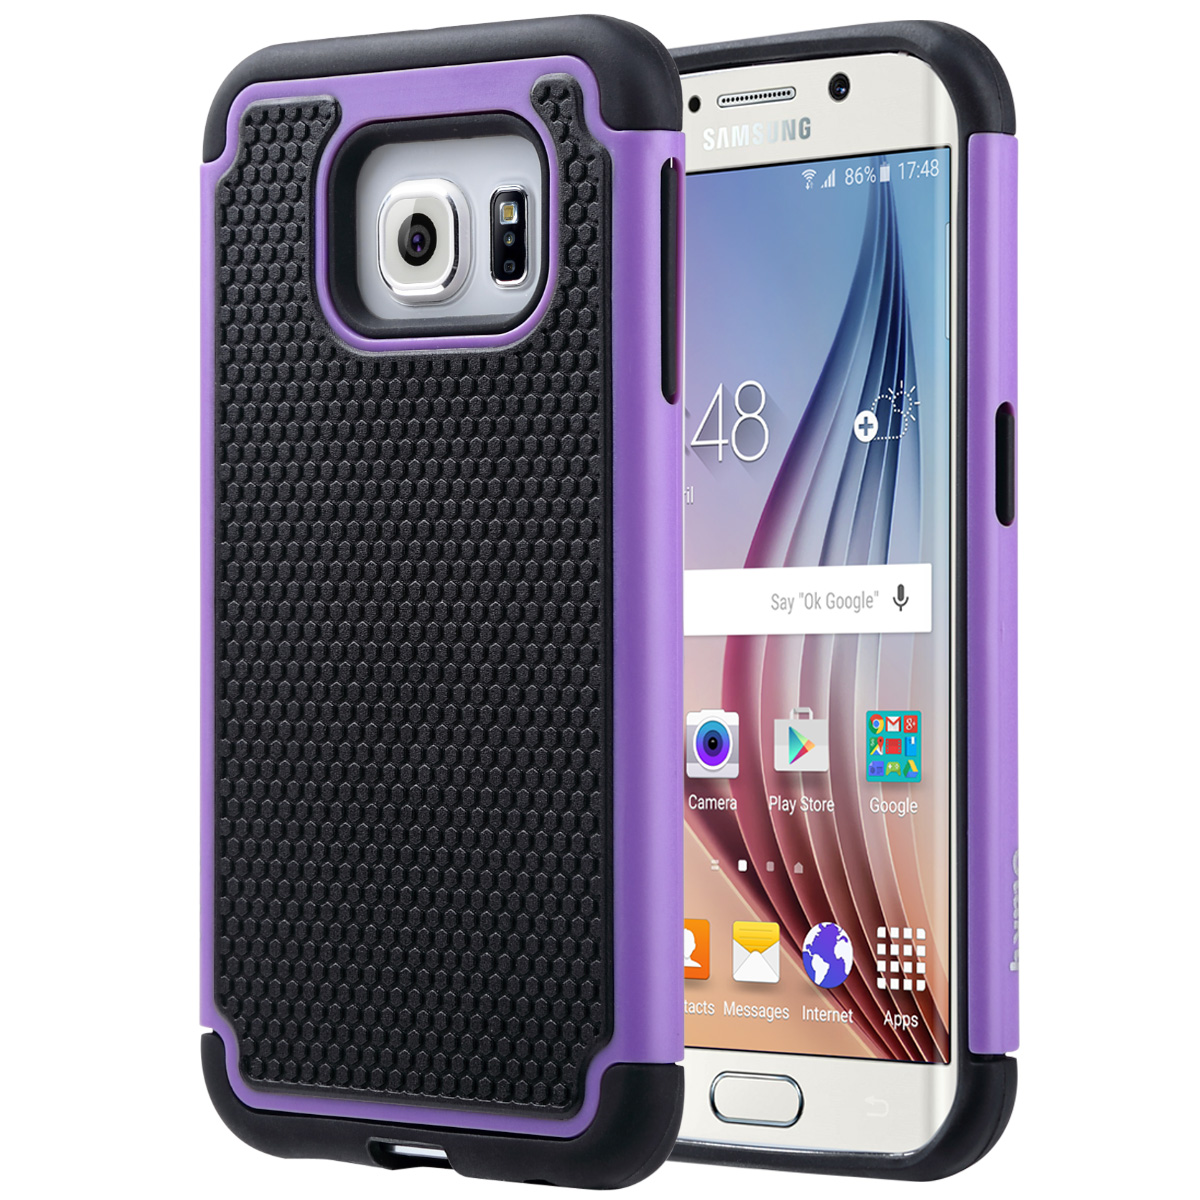 "ULAK Galaxy S6 Edge Case, Hybrid Case with Dual Shock Resistant Soft silicone Case Design and Hard PC Construction for Samsung Galaxy S6 Edge (5.1"" inch) 2015 Release"